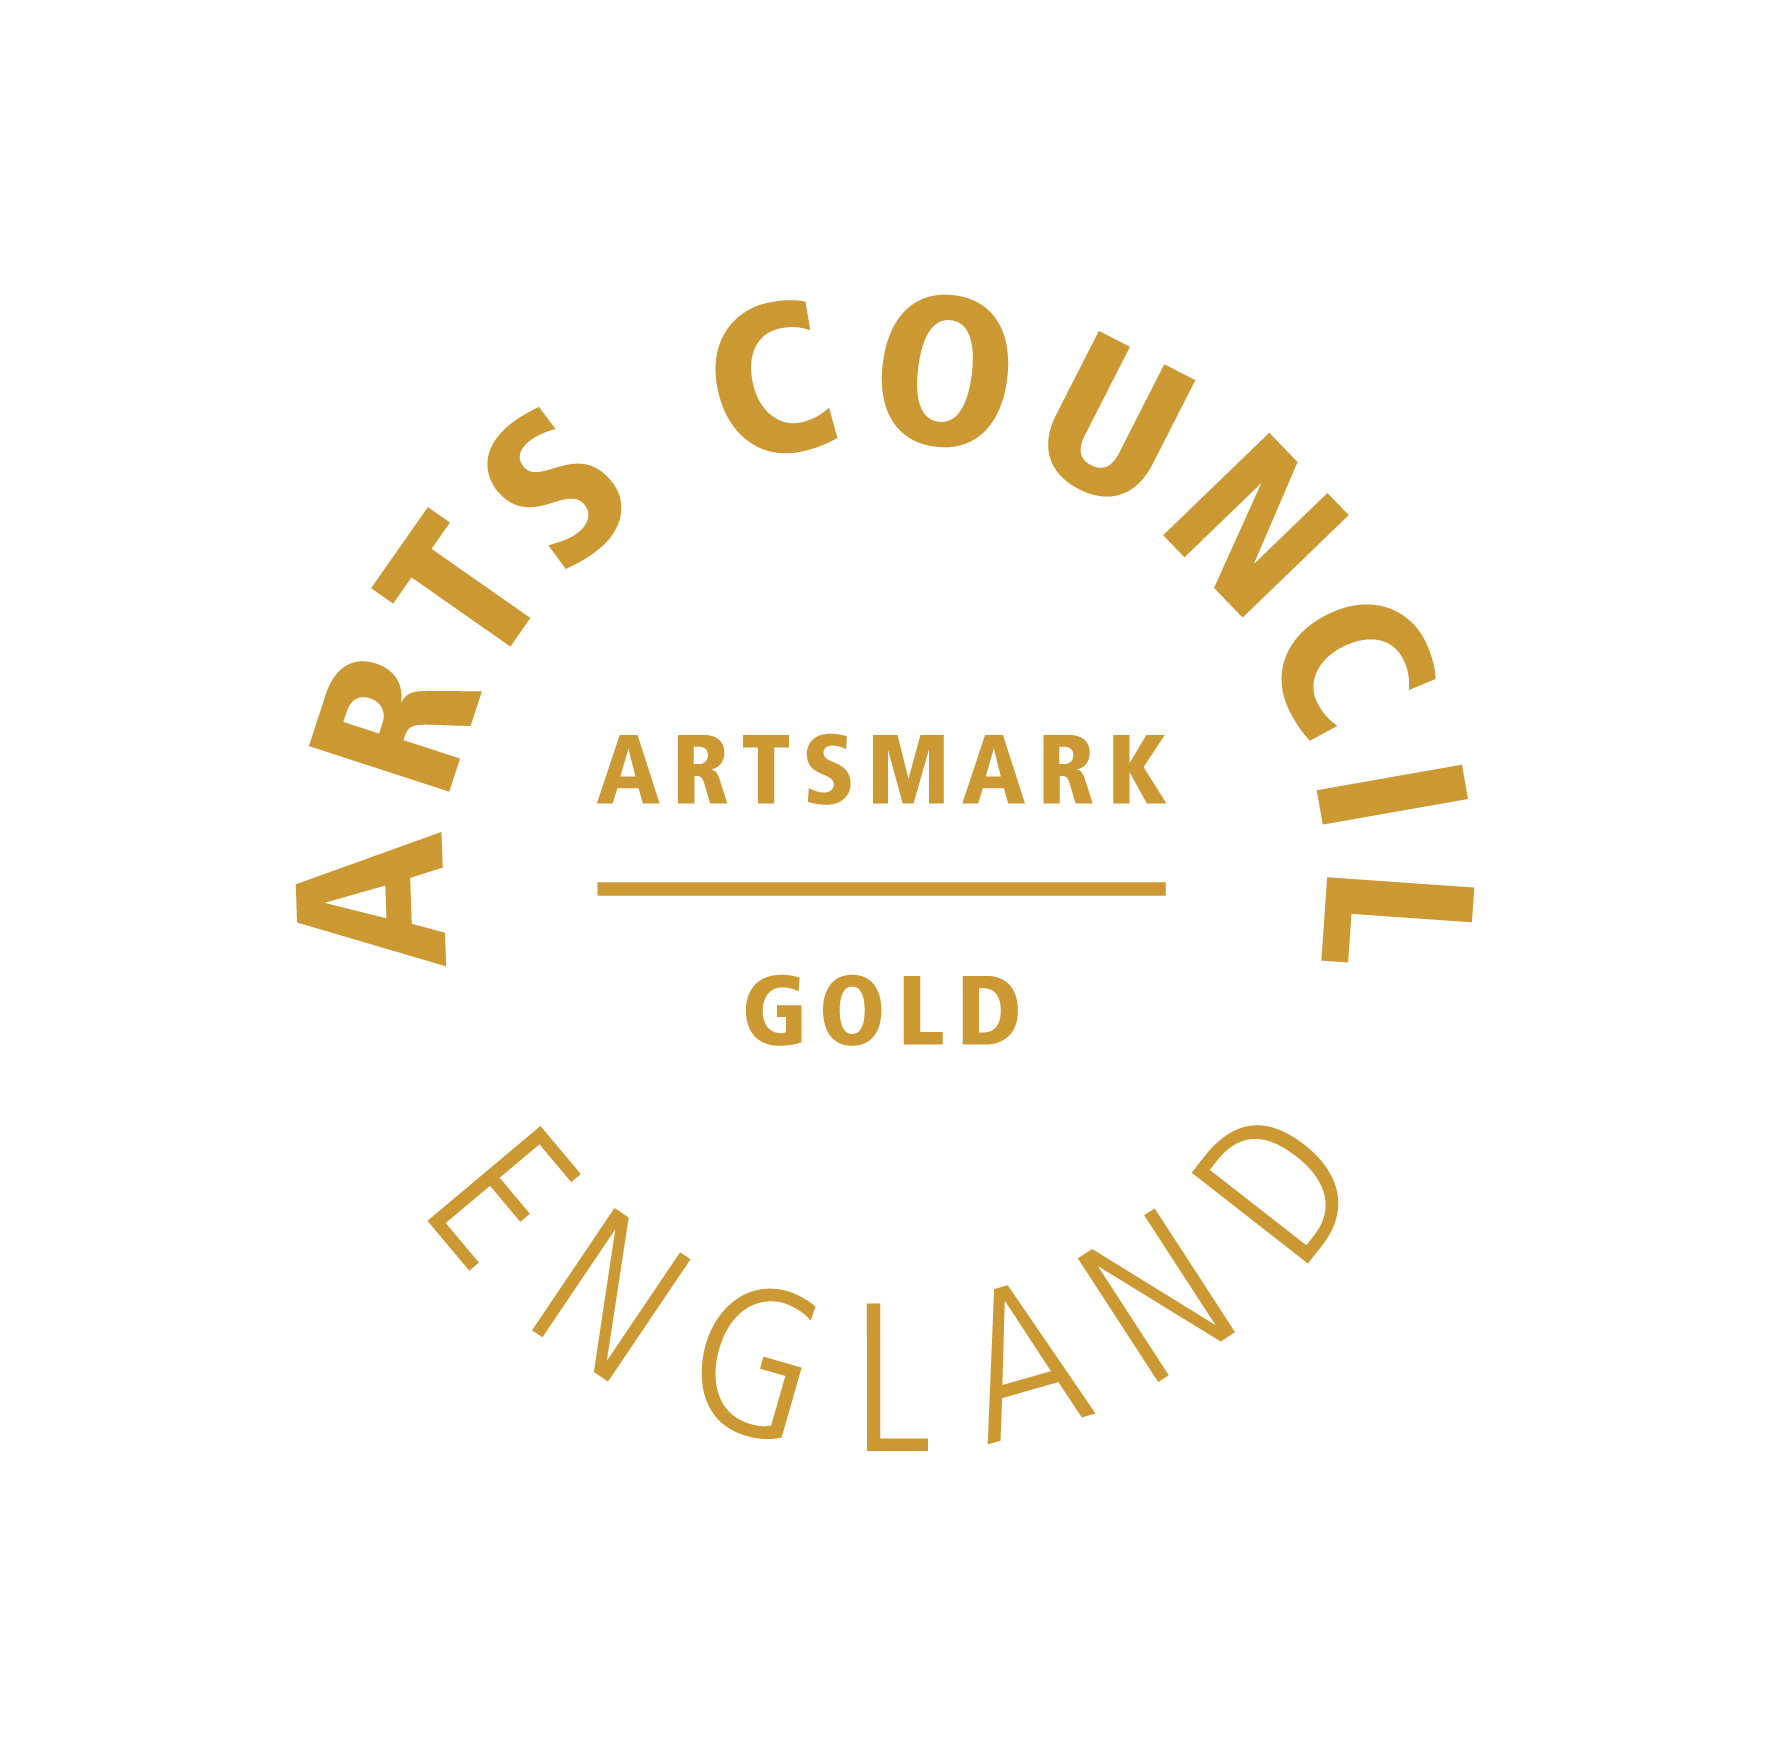 http://www.staidansschool.co.uk/wp-content/uploads/2018/07/ARTSMARKGOLD_RGB.jpg